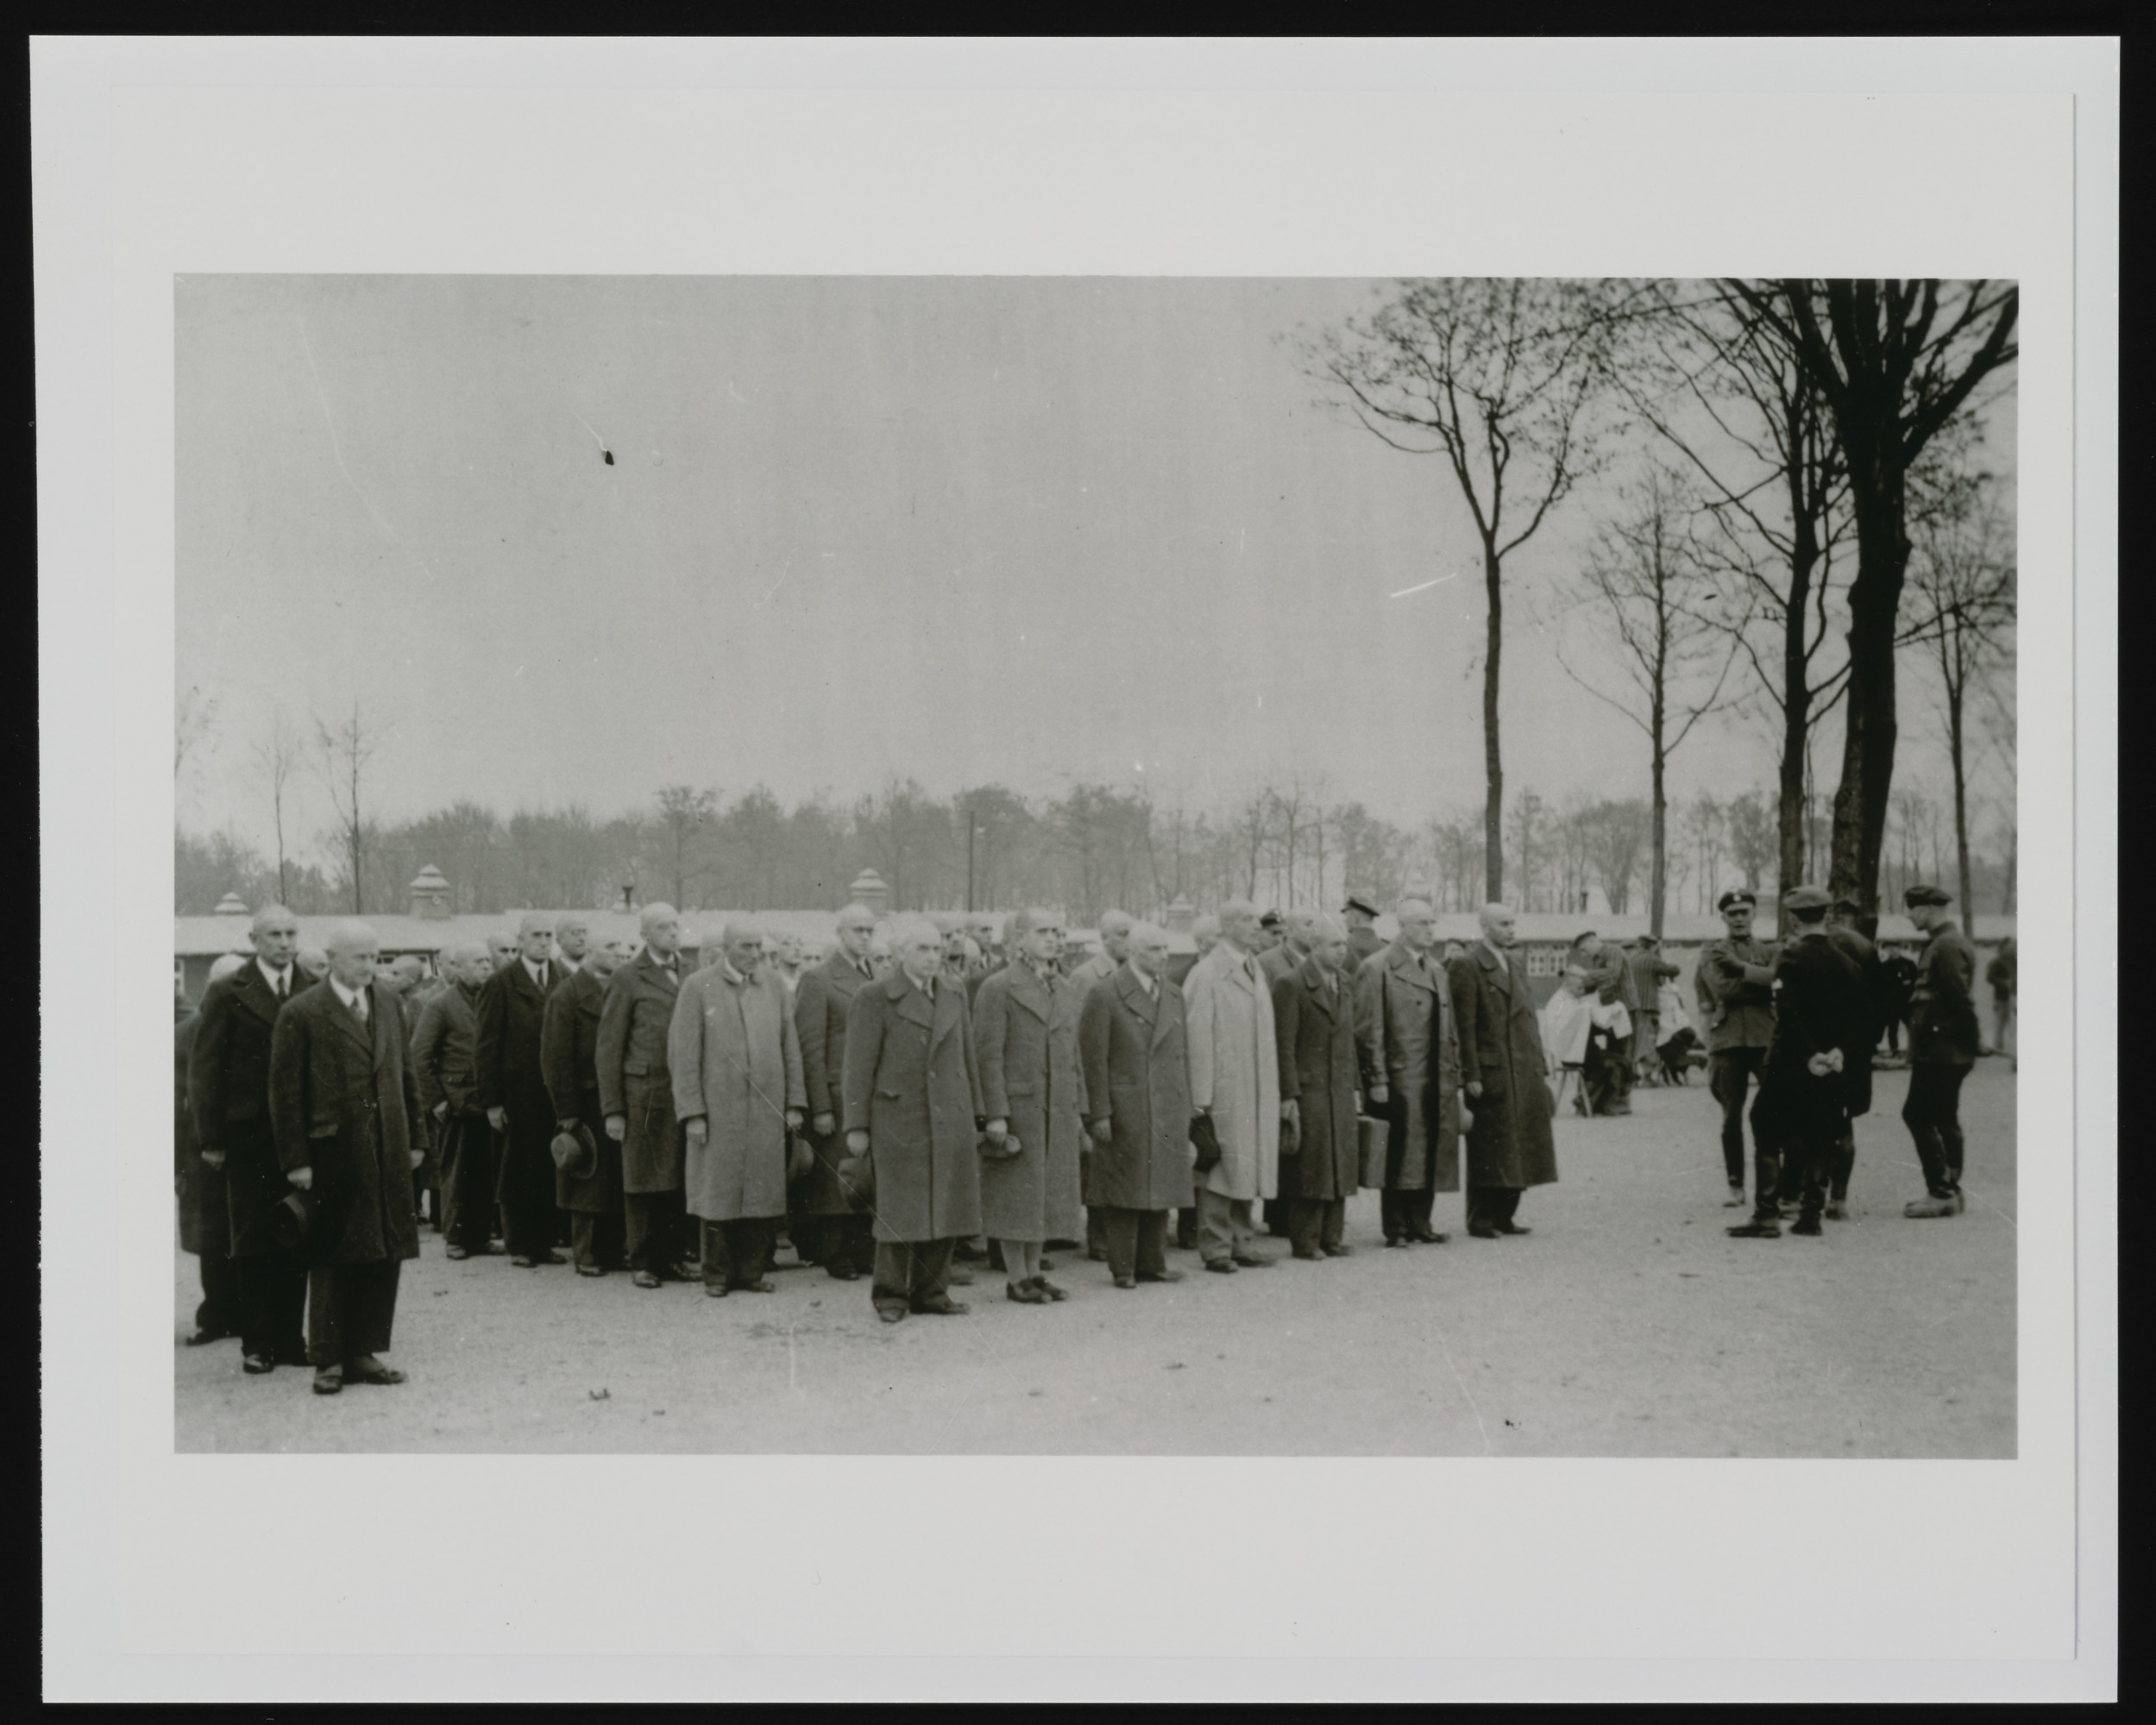 Newly arrived prisoners, still in their civilian clothes, and after shaving and disinfection, stand at roll call in Buchenwald concentration camp shortly after Kristallnacht.